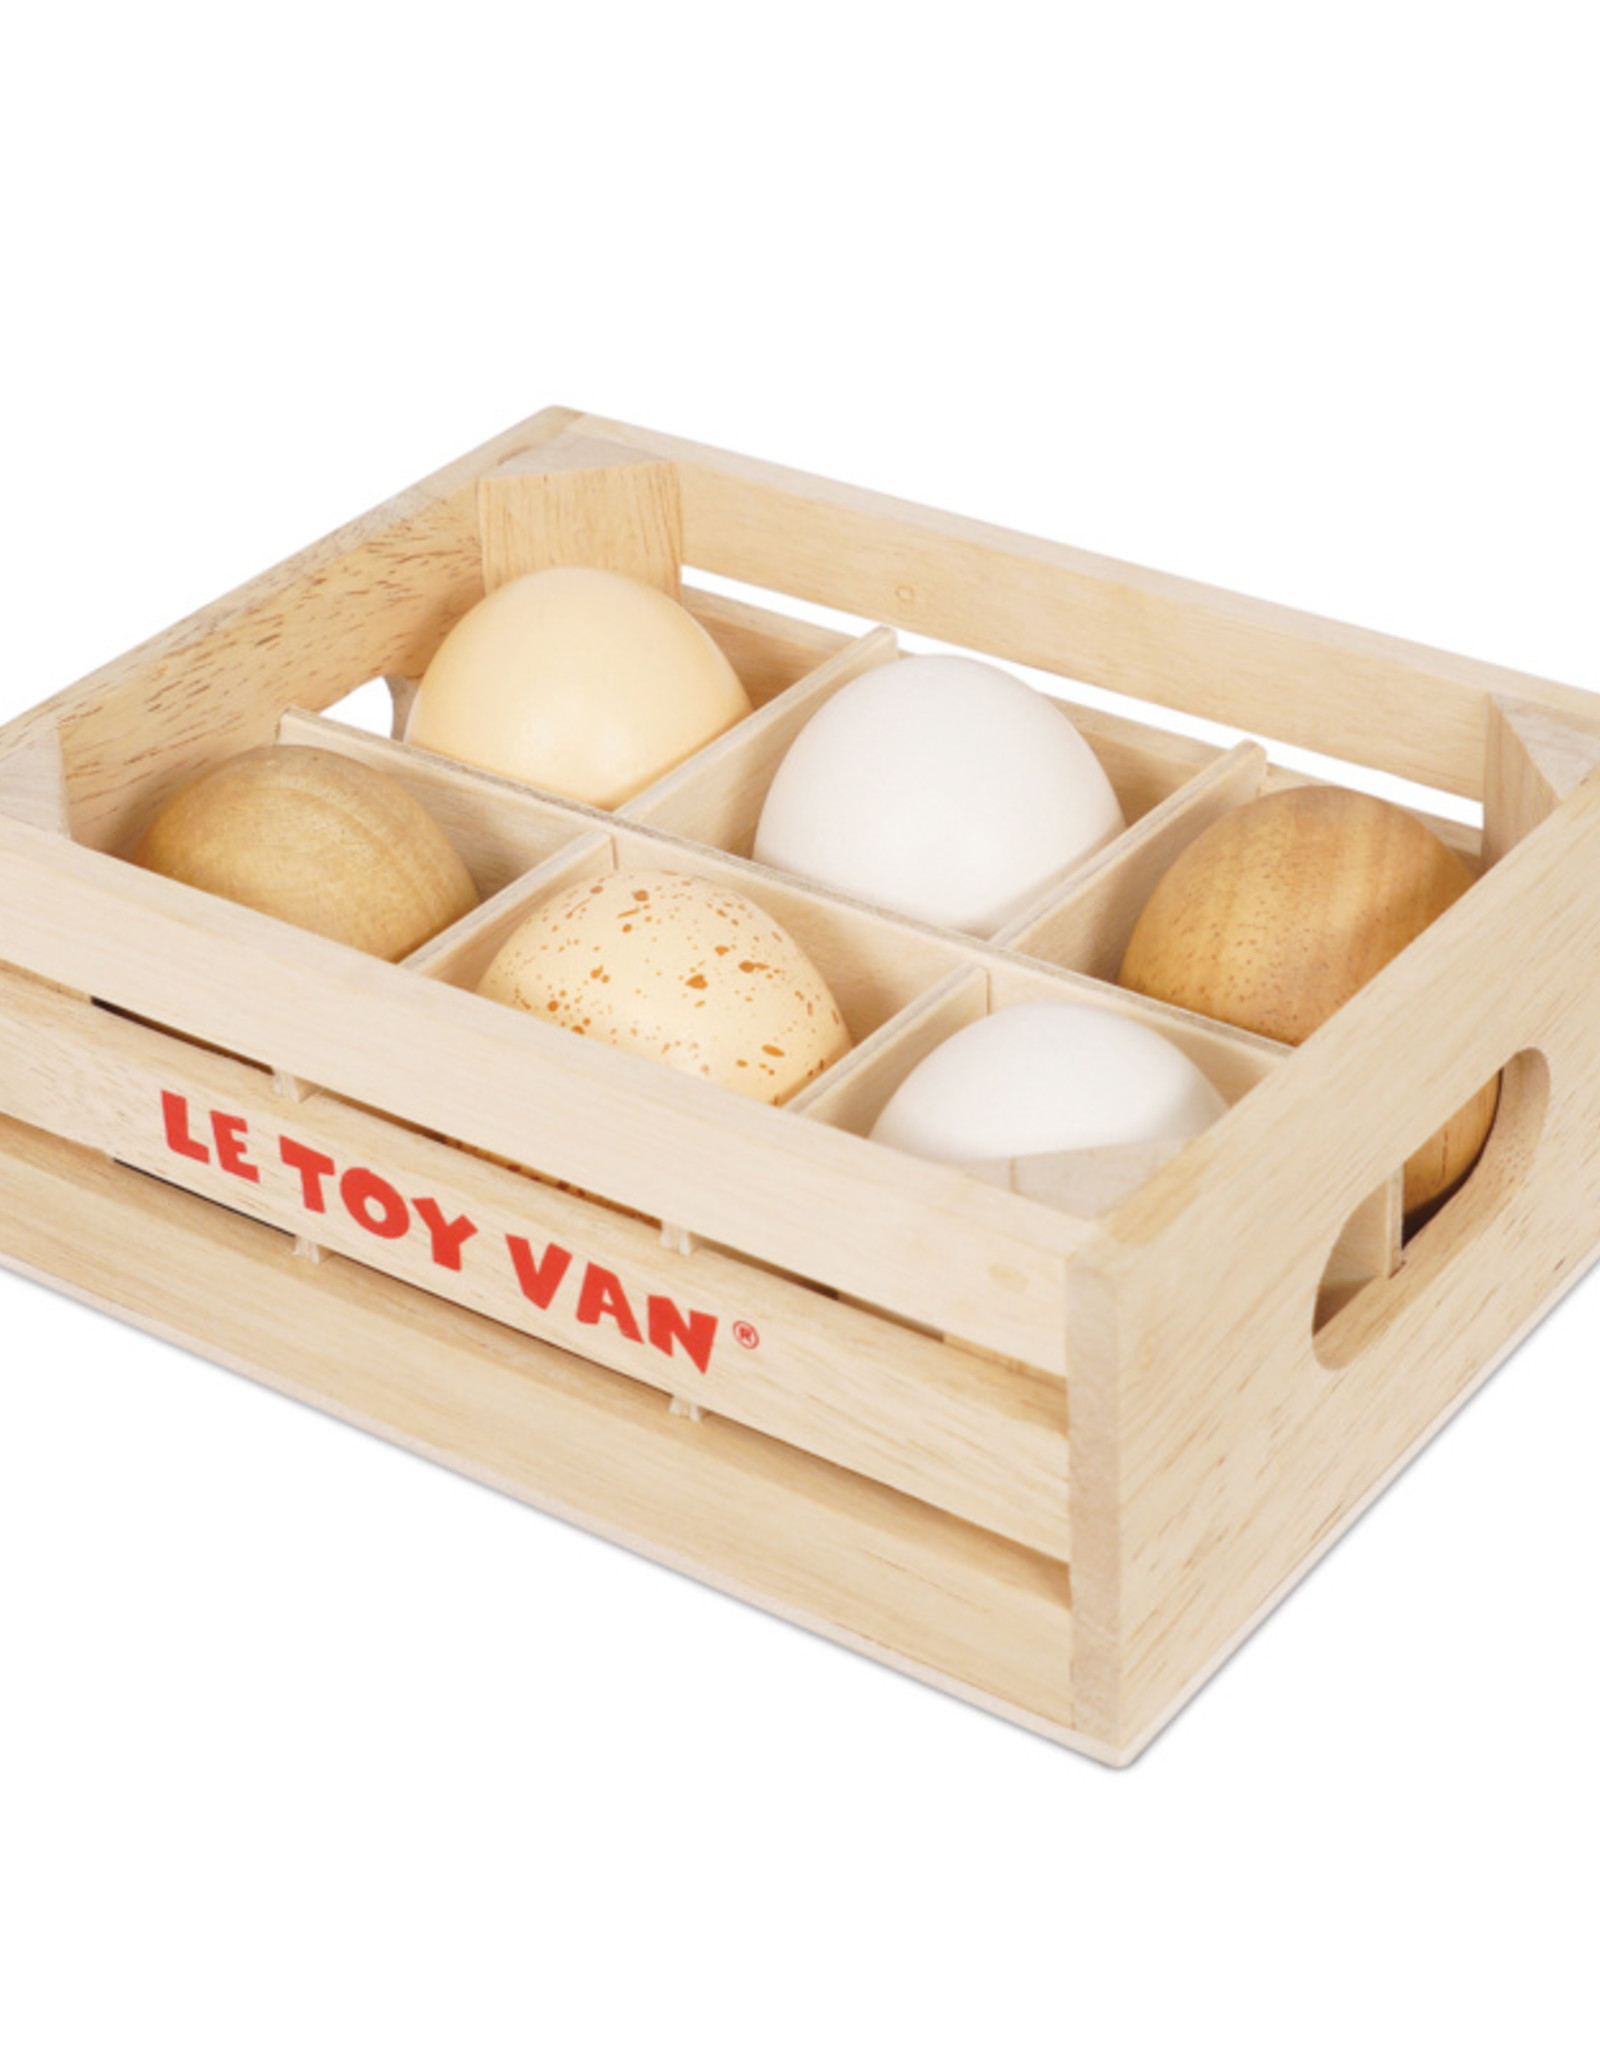 Le Toy Van Honeybake - Eggs In Crate